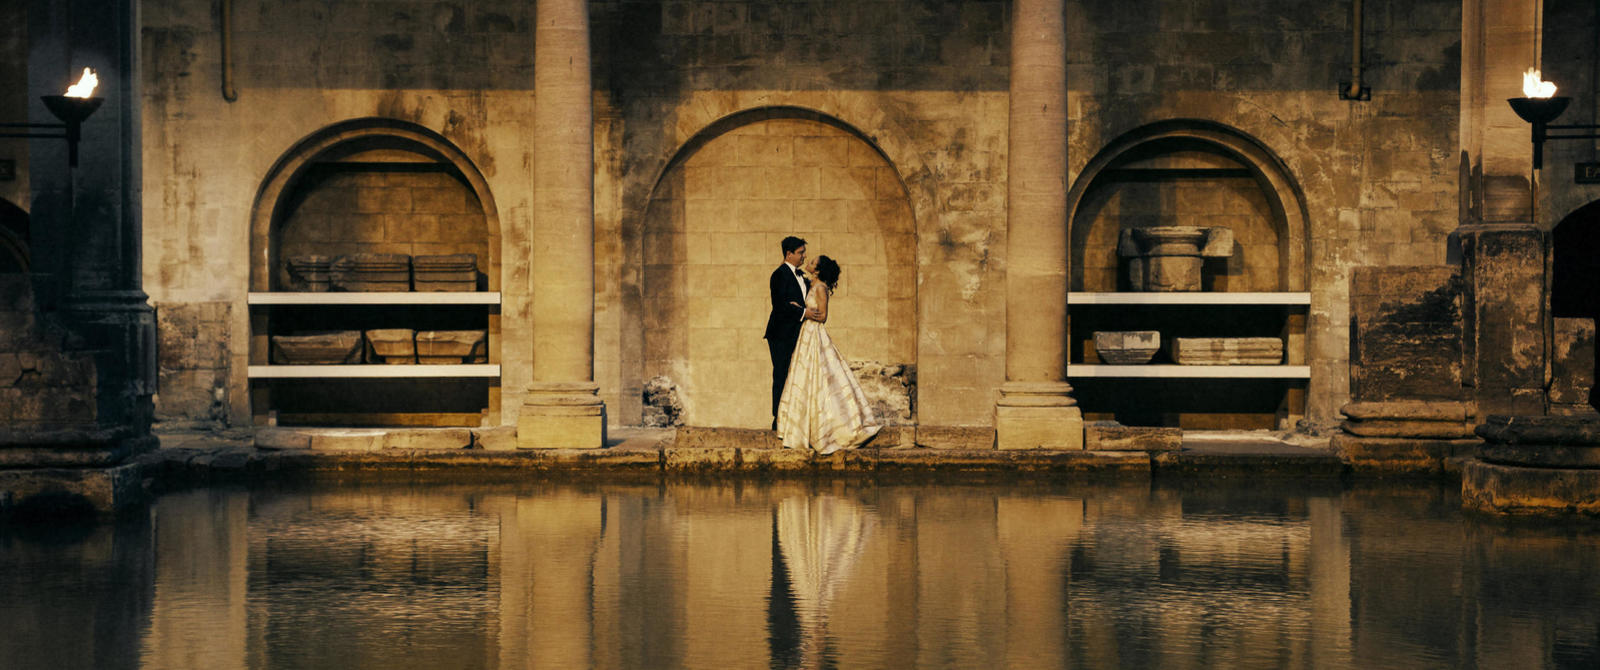 Image: Wedding couple at the Roman Baths